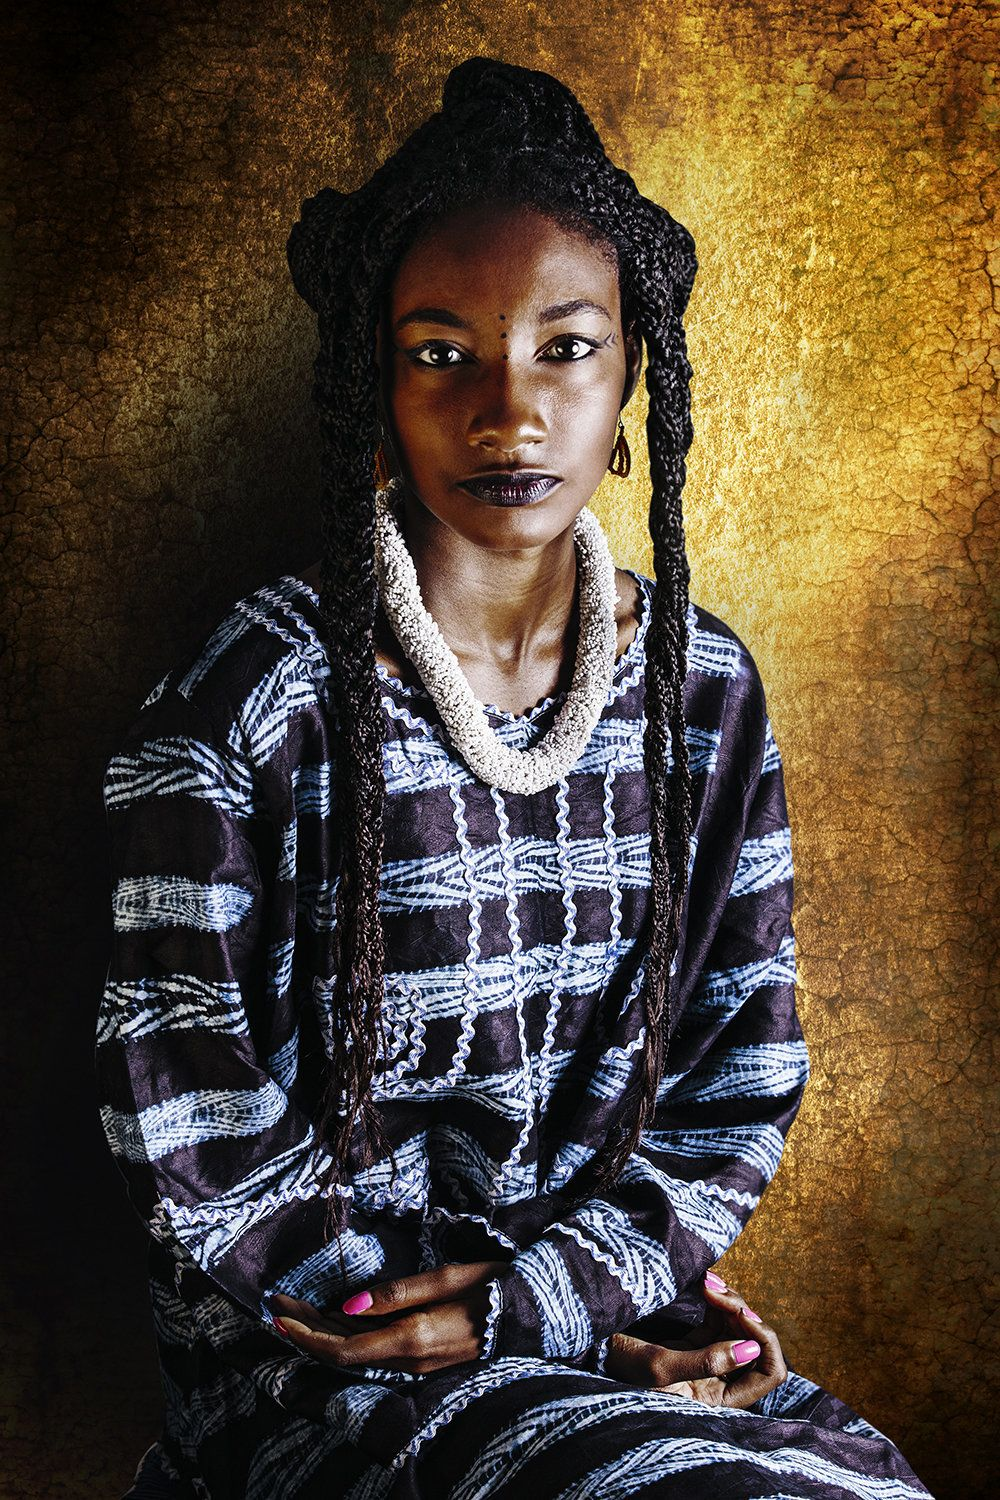 Selena Souadou, 21, is from Guinea. She essentially lives in Ivory Coast and Senegal. She studies international relations wit